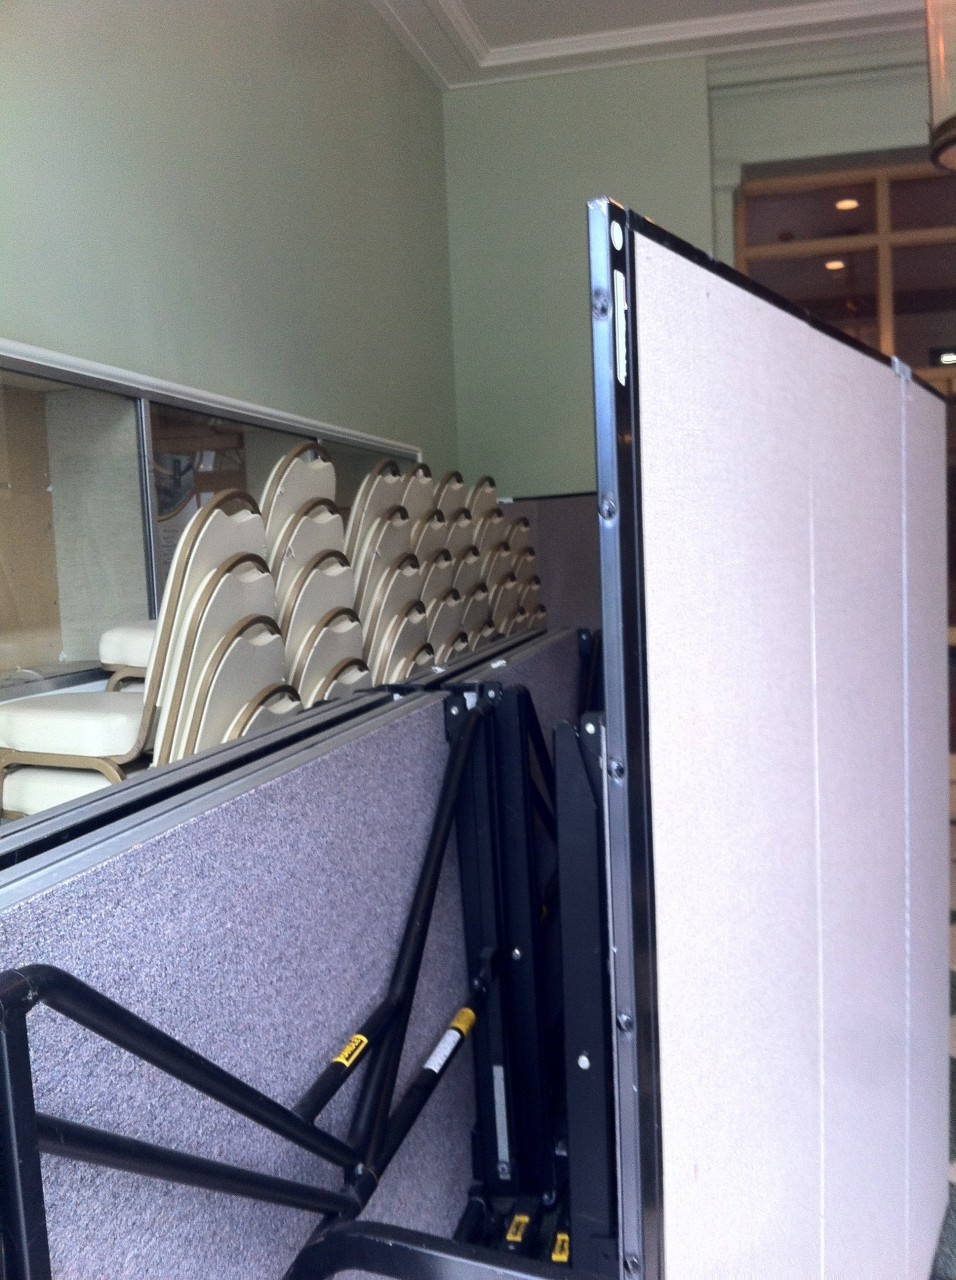 Screenflex Room Dividers as a barrier to a storage space